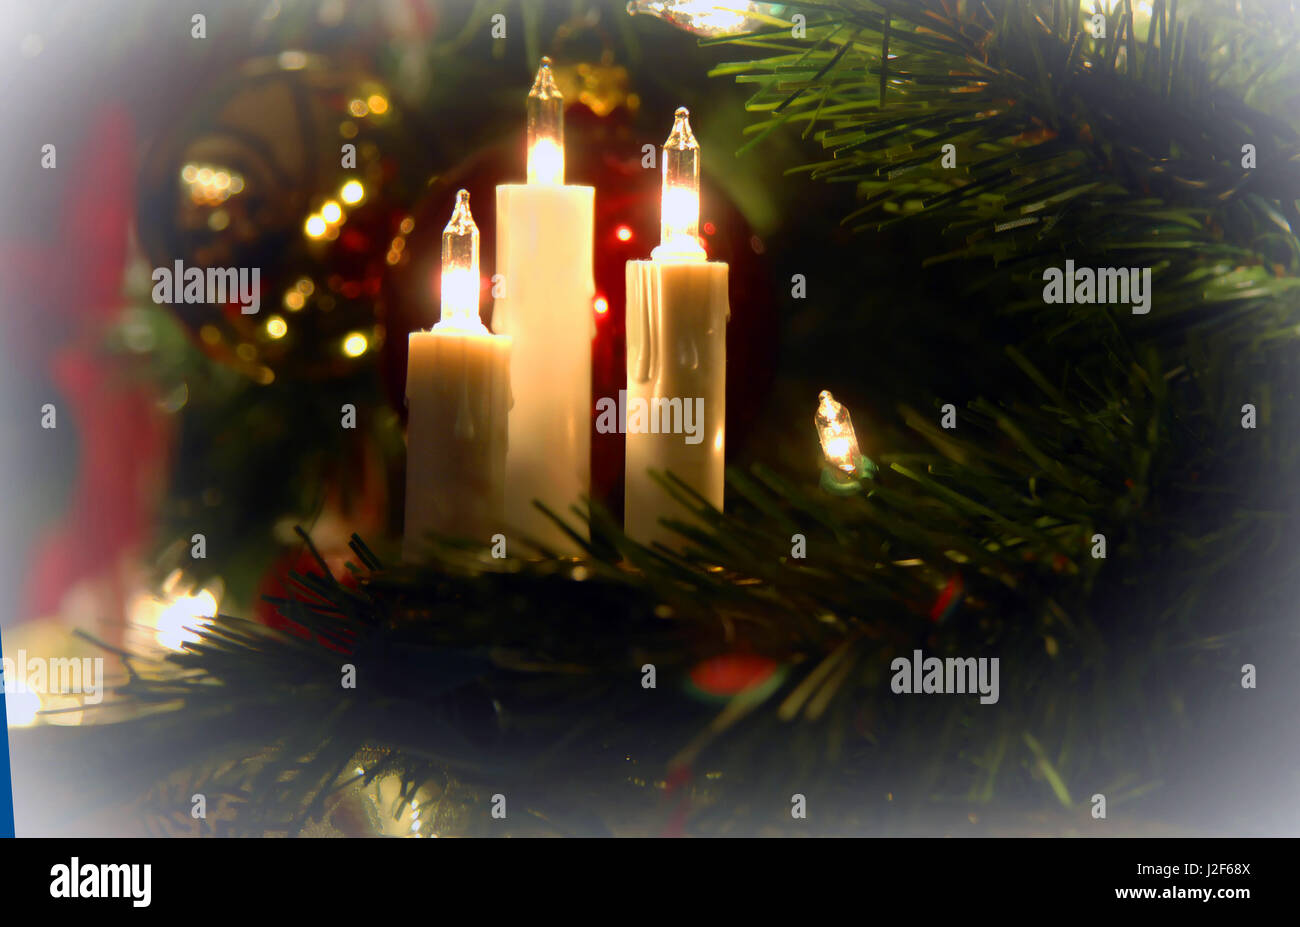 Electric Christmas Candles.Three Electric Candles Spread A Warm Glow On A Christmas